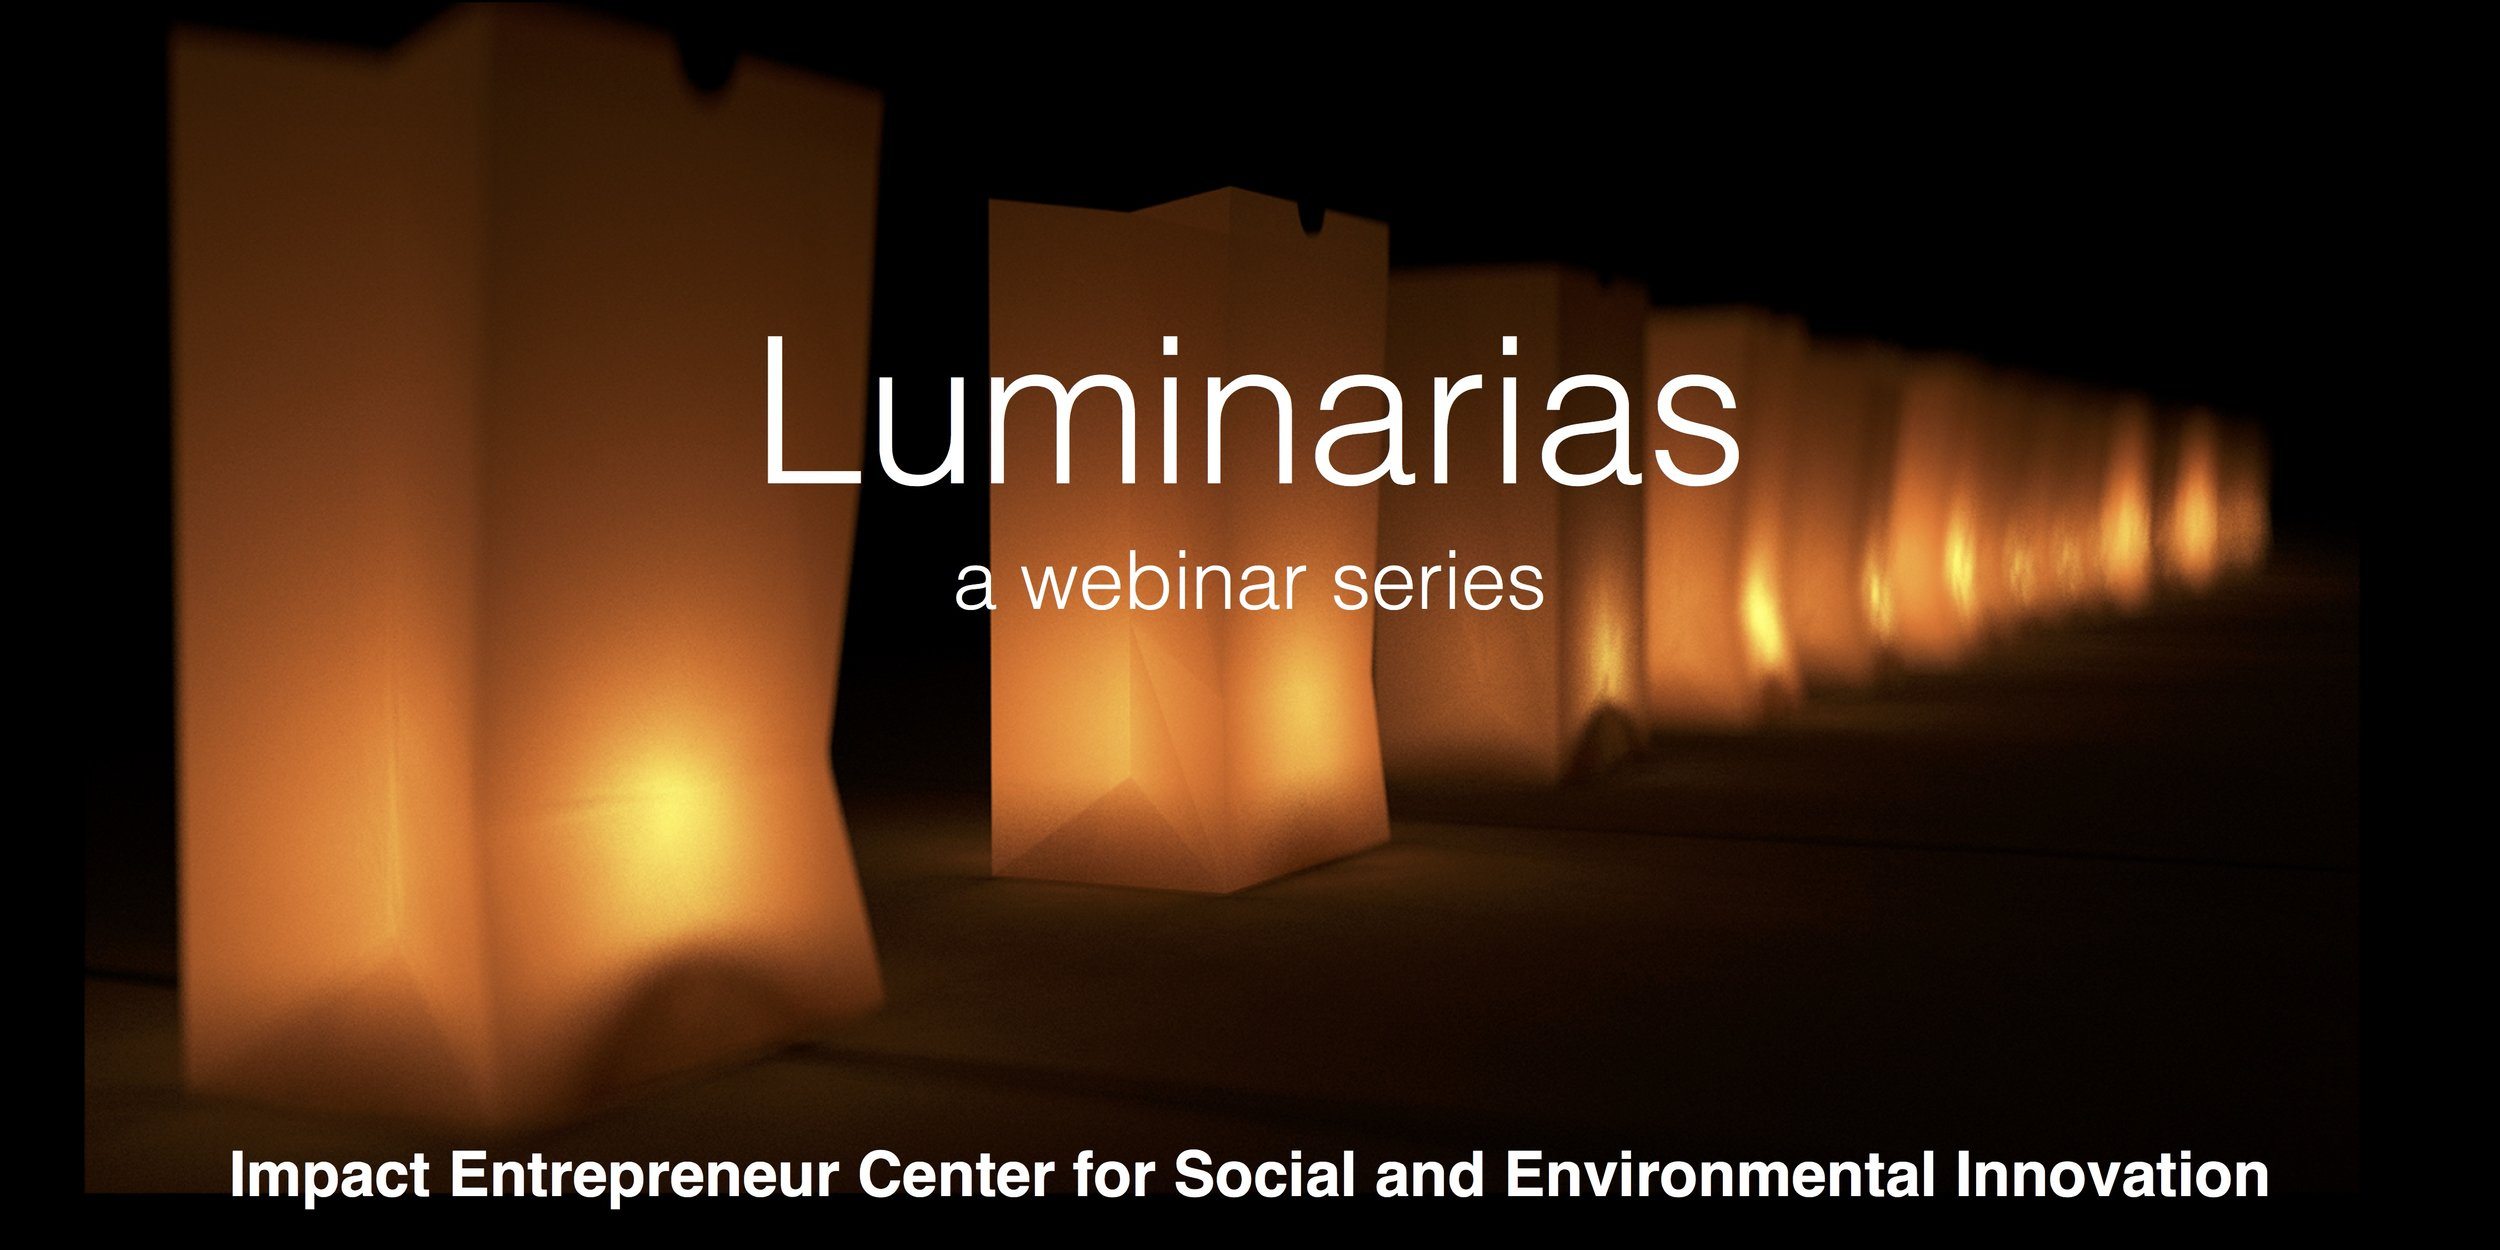 Luminarias Program Image.jpg